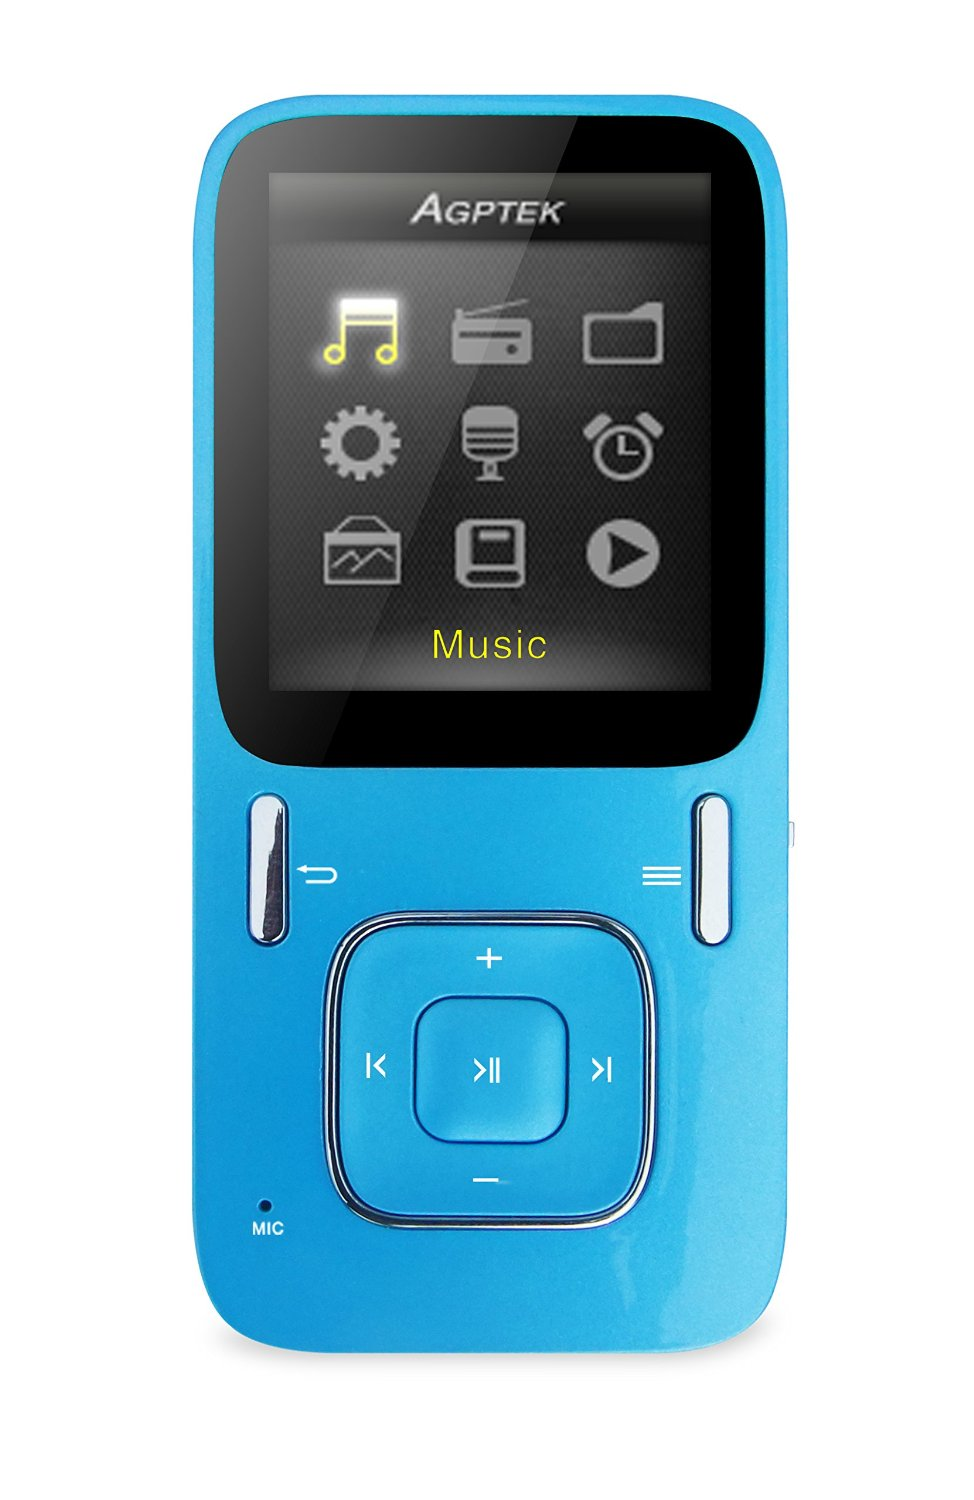 AGPtEK B03 Hi-Fi 8GB MP3 Music Player, 40 Hours Playback, Updated Version of A02 Mp3 Player, Supports up to 64GB Micro SD Card (Blue)